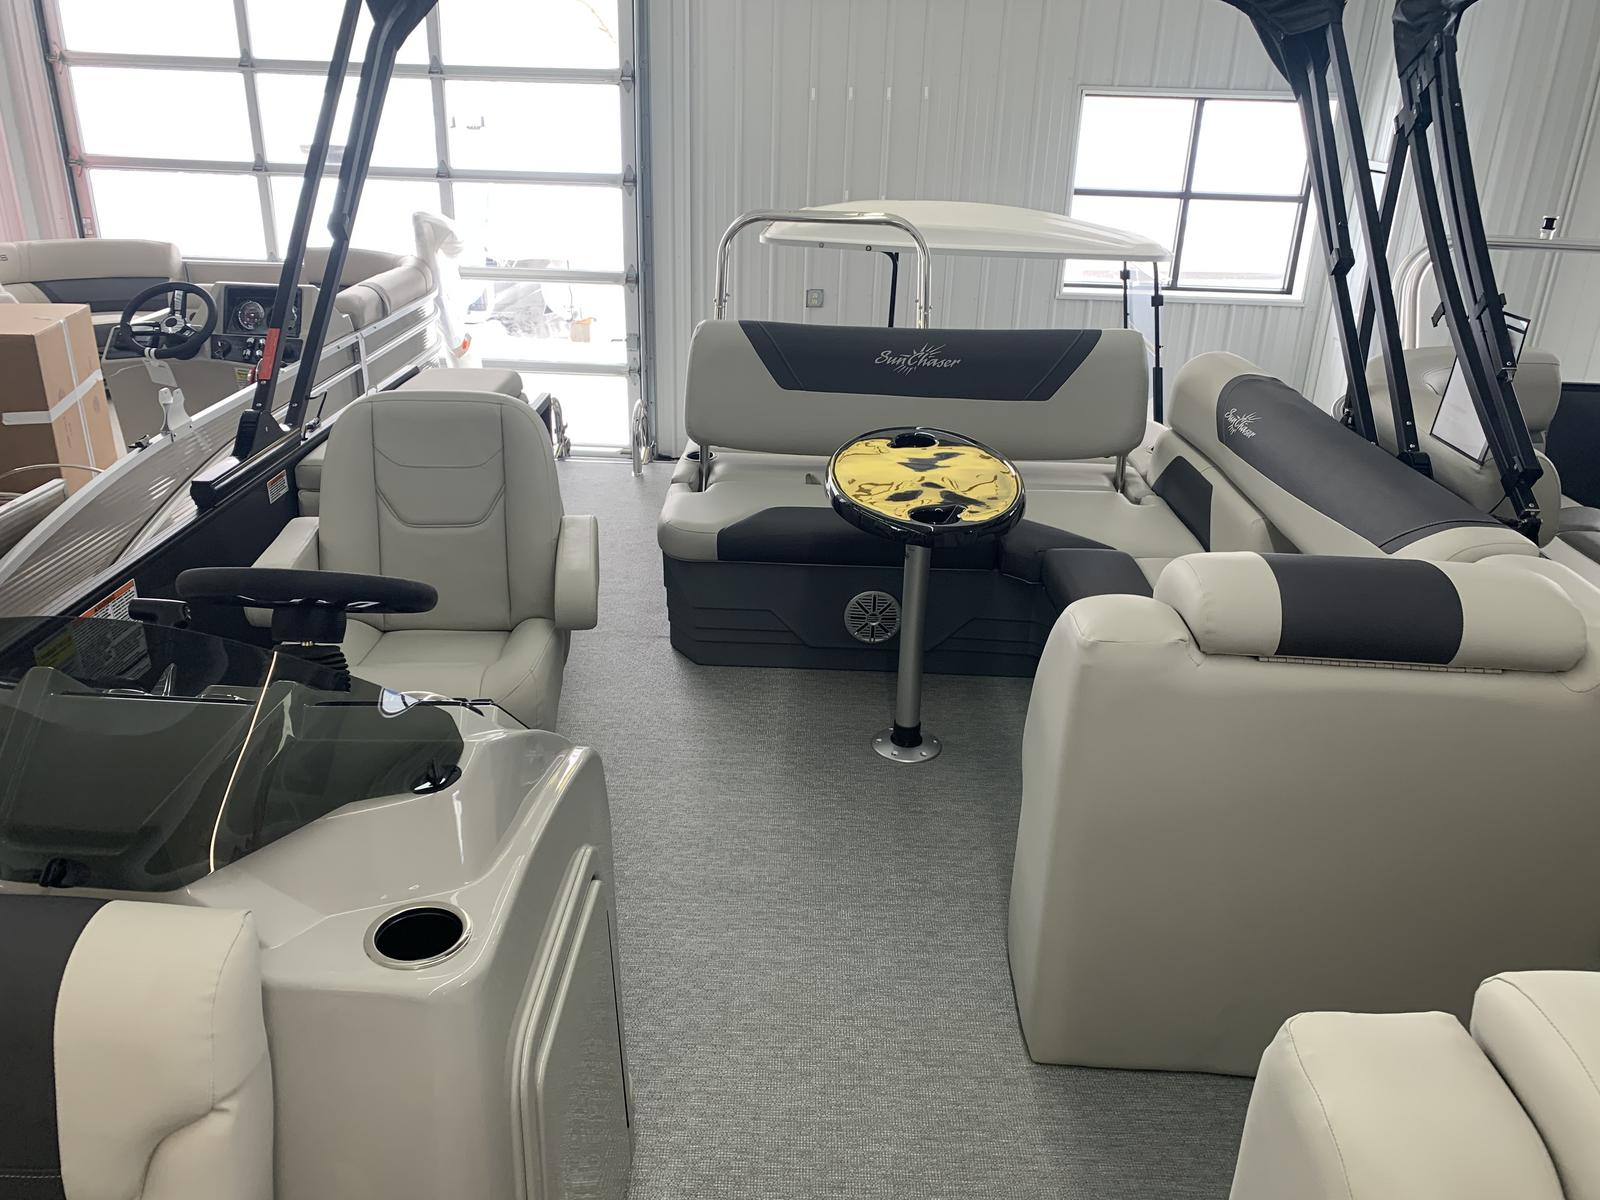 2021 SunChaser boat for sale, model of the boat is Geneva Cruise 22 SB & Image # 3 of 14